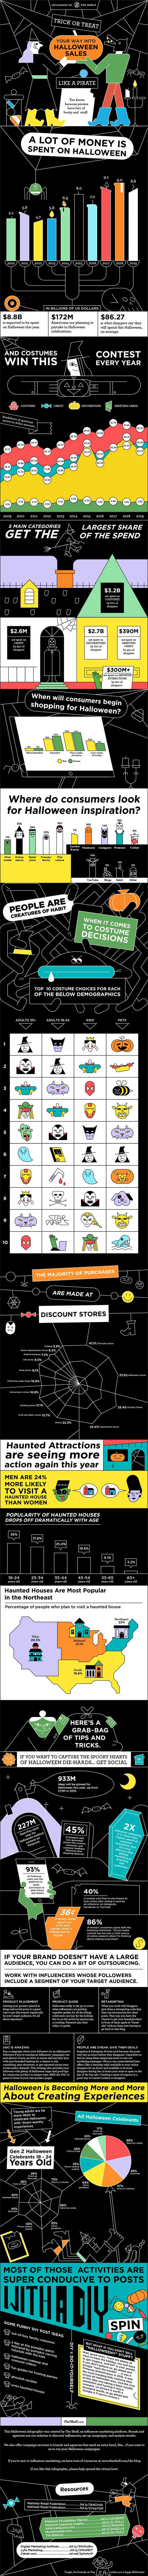 Halloween 2020 Statistics Halloween Stats and Tips for Marketers: 2019 | Marketing Infographic